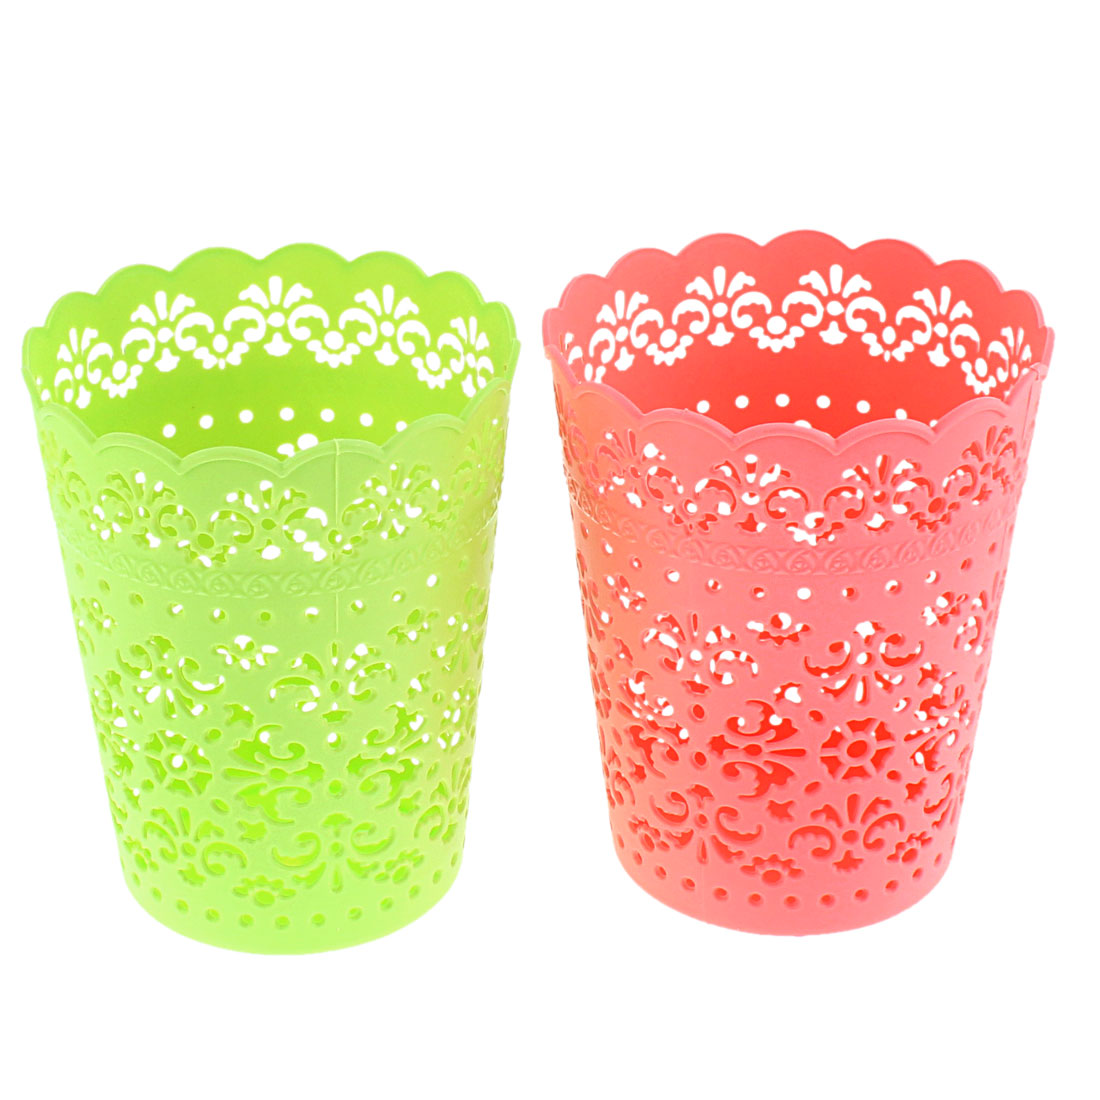 Plastic Hollow Out Floral Design Storage Basket Green Coral Pink 2 Pcs